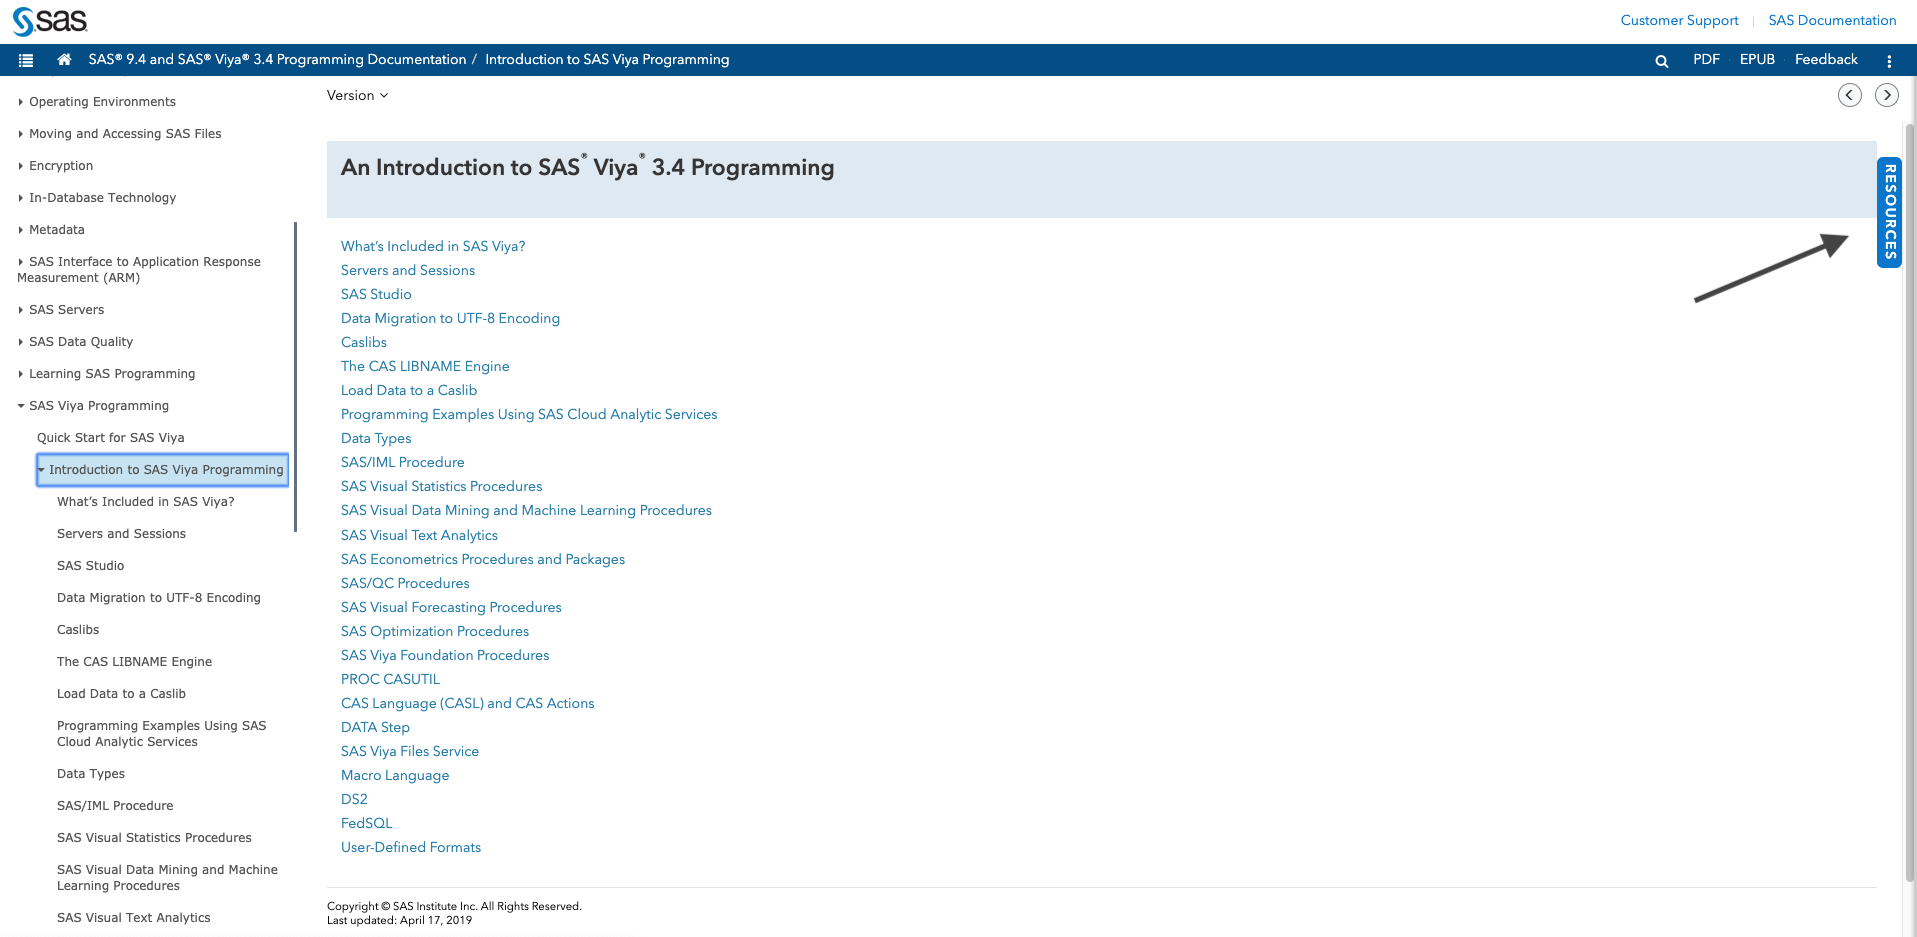 New related resource initiative in the SAS Help Center